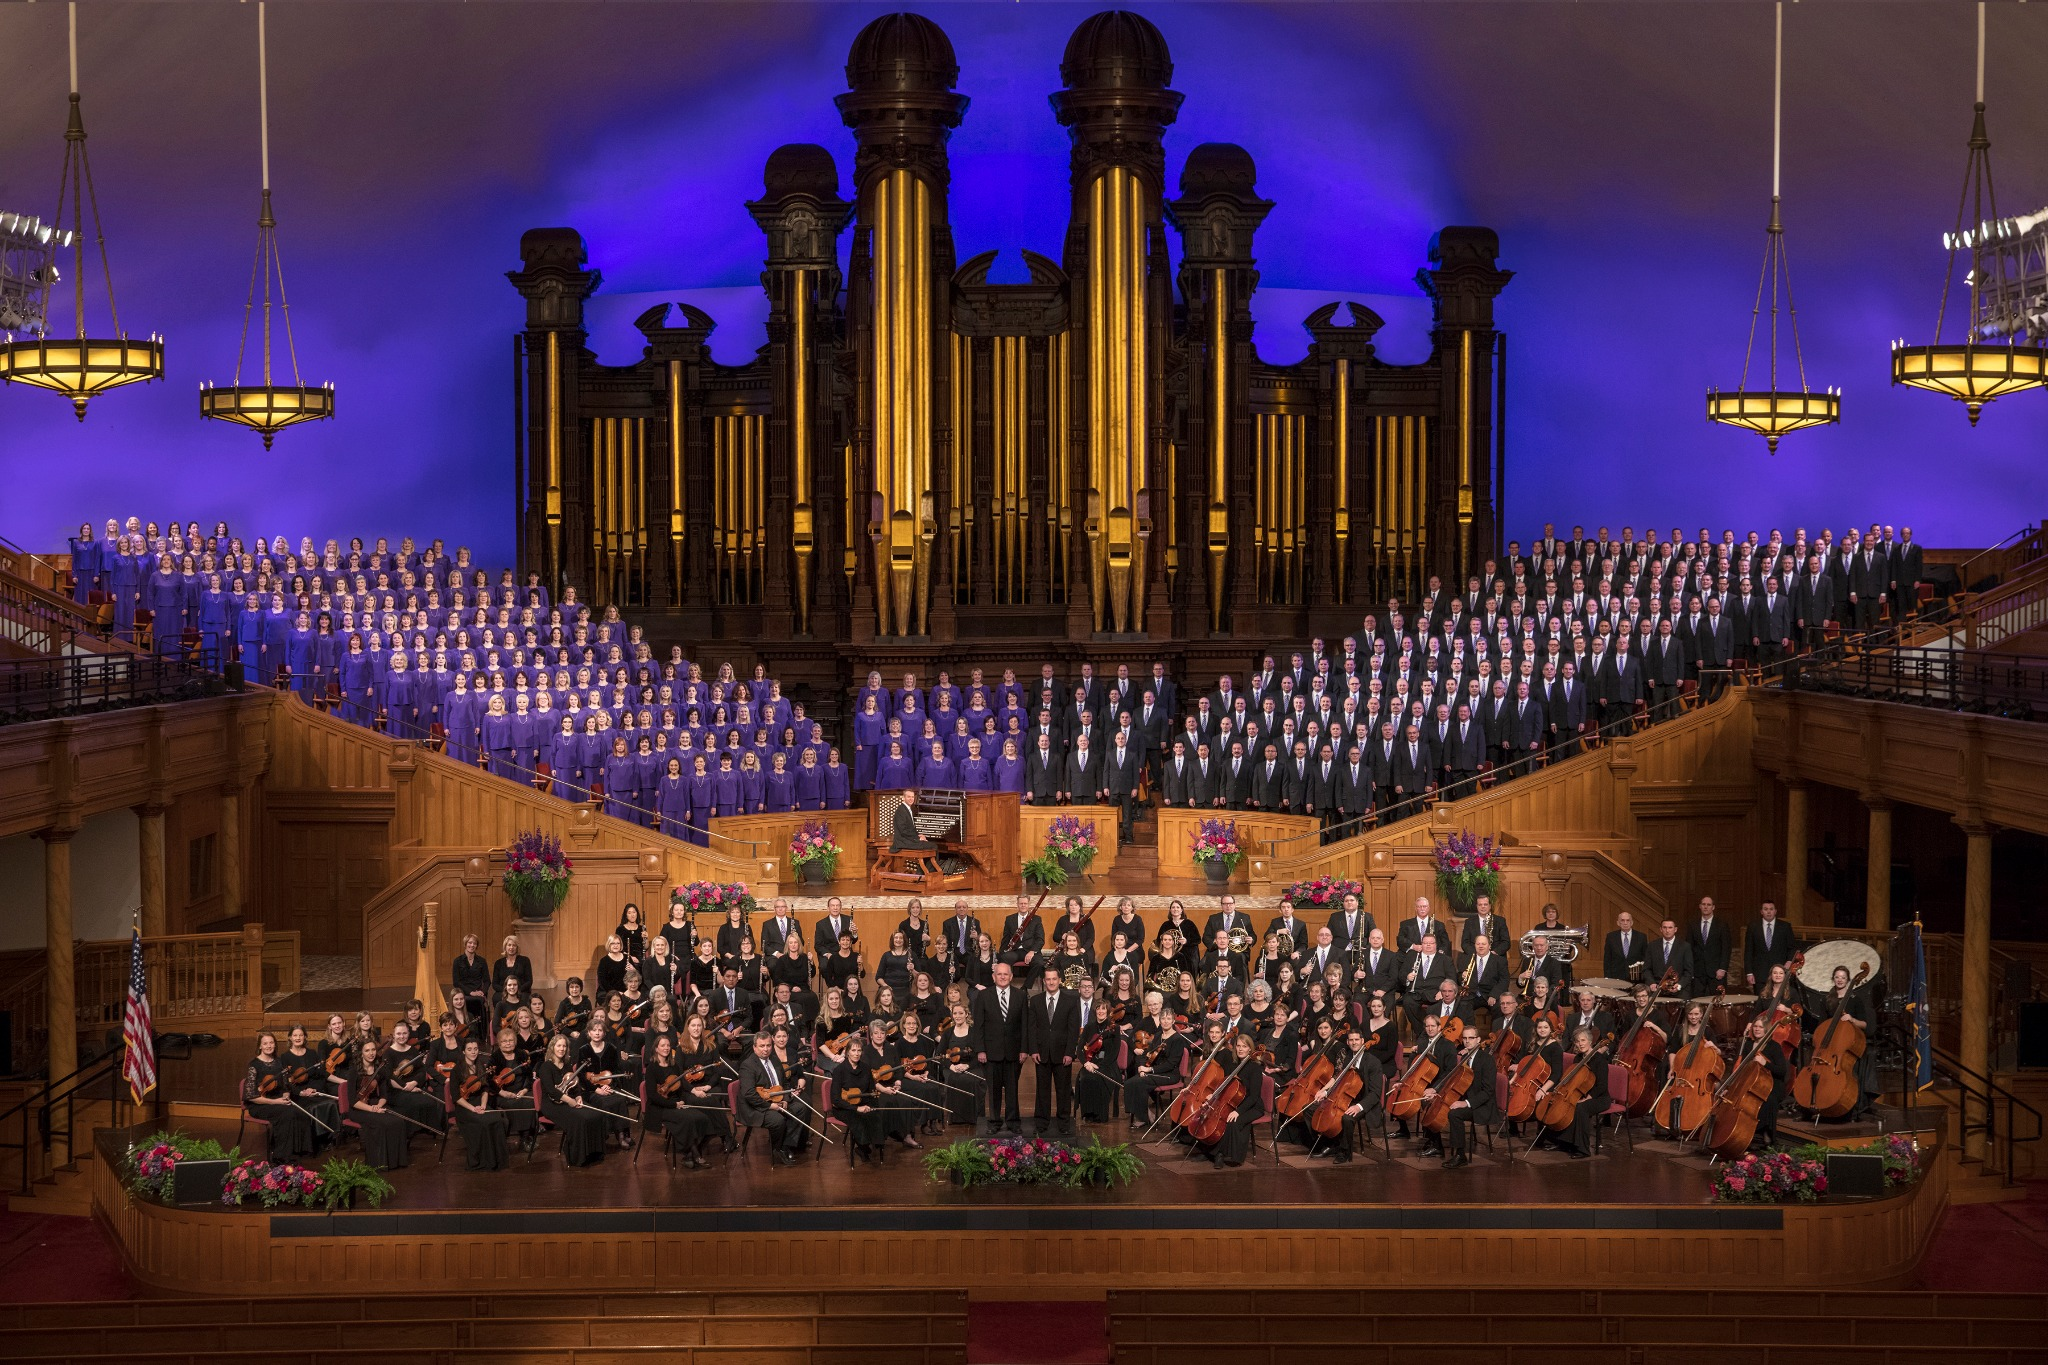 The Tabernacle Choir and Orchestra at Temple Square in the historic Tabernacle building in Salt Lake City.